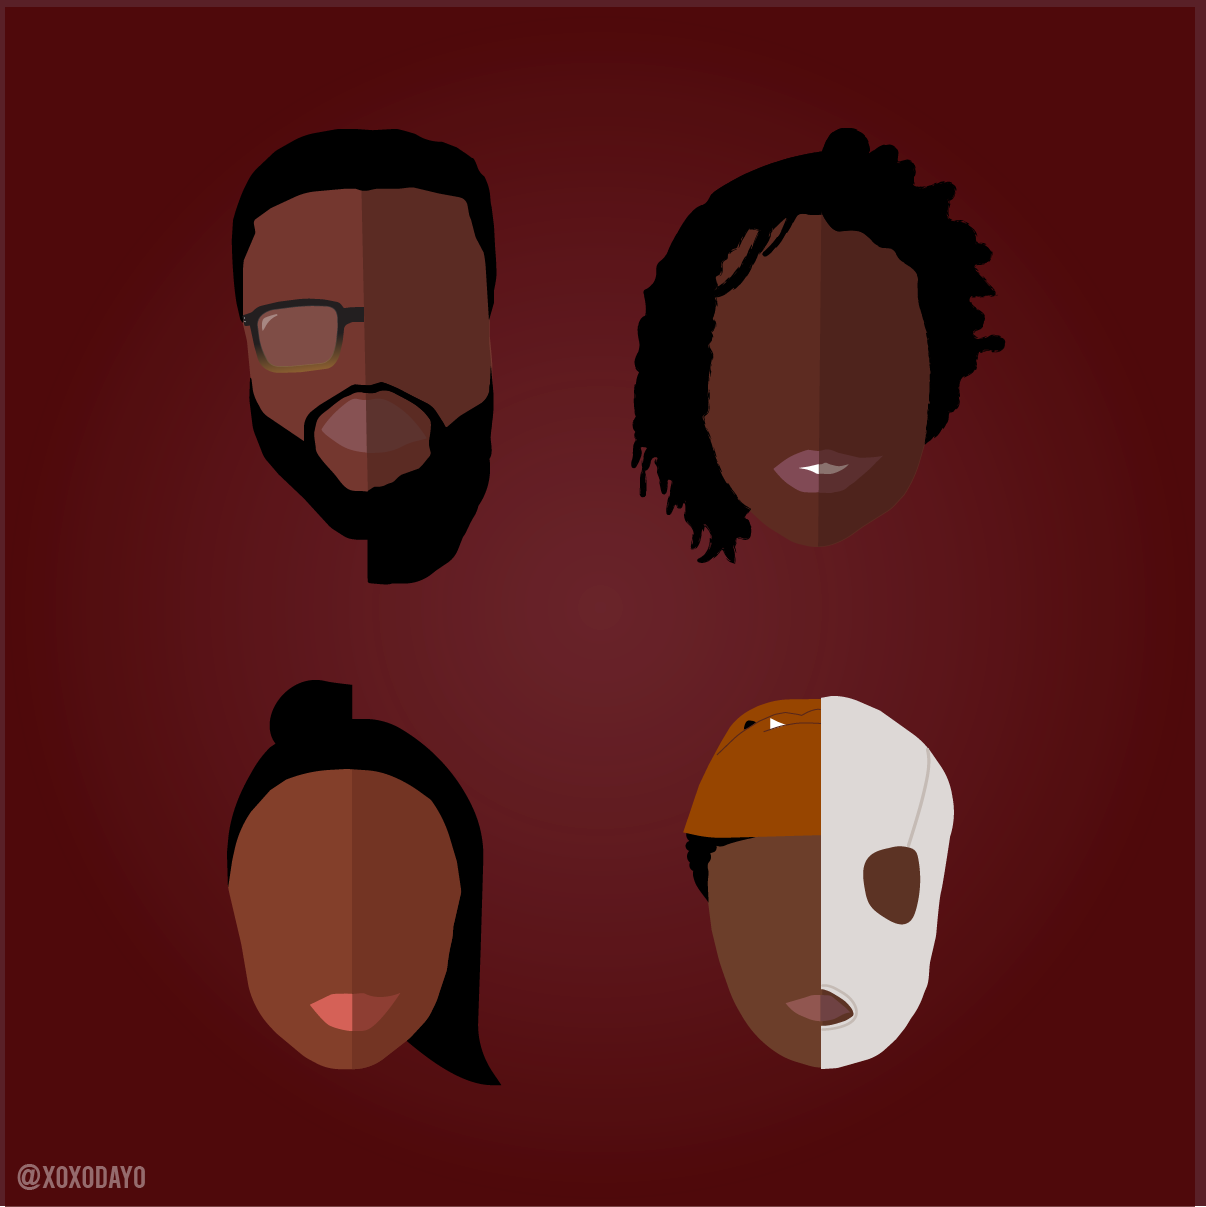 Artwork inspired by Jordan Peele's hit movie US featuring a split image the characters and their tethered